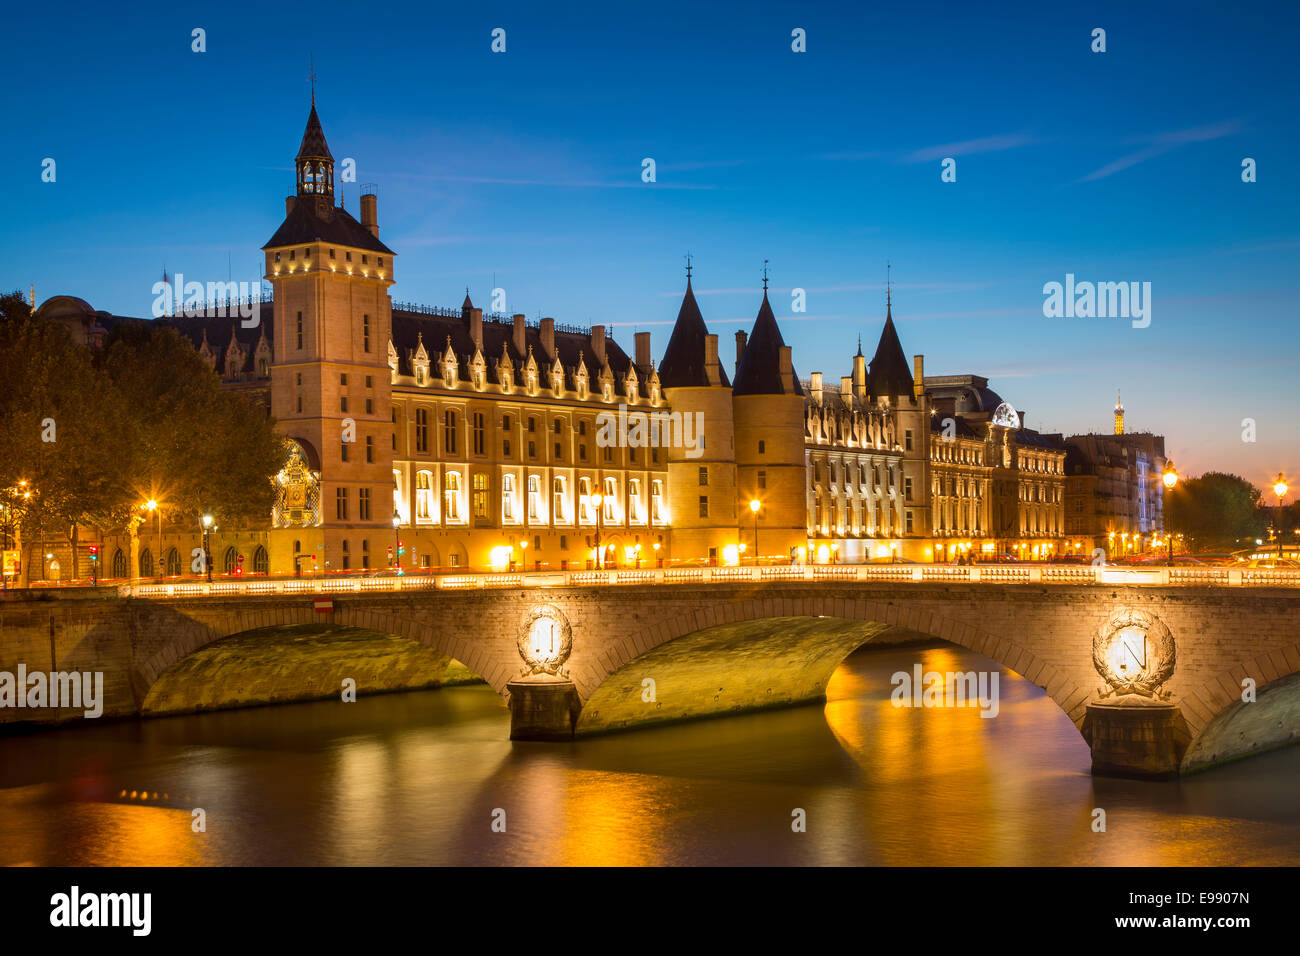 Twilight over the Conciergerie and Pont au Change along the River Seine, Paris France - Stock Image